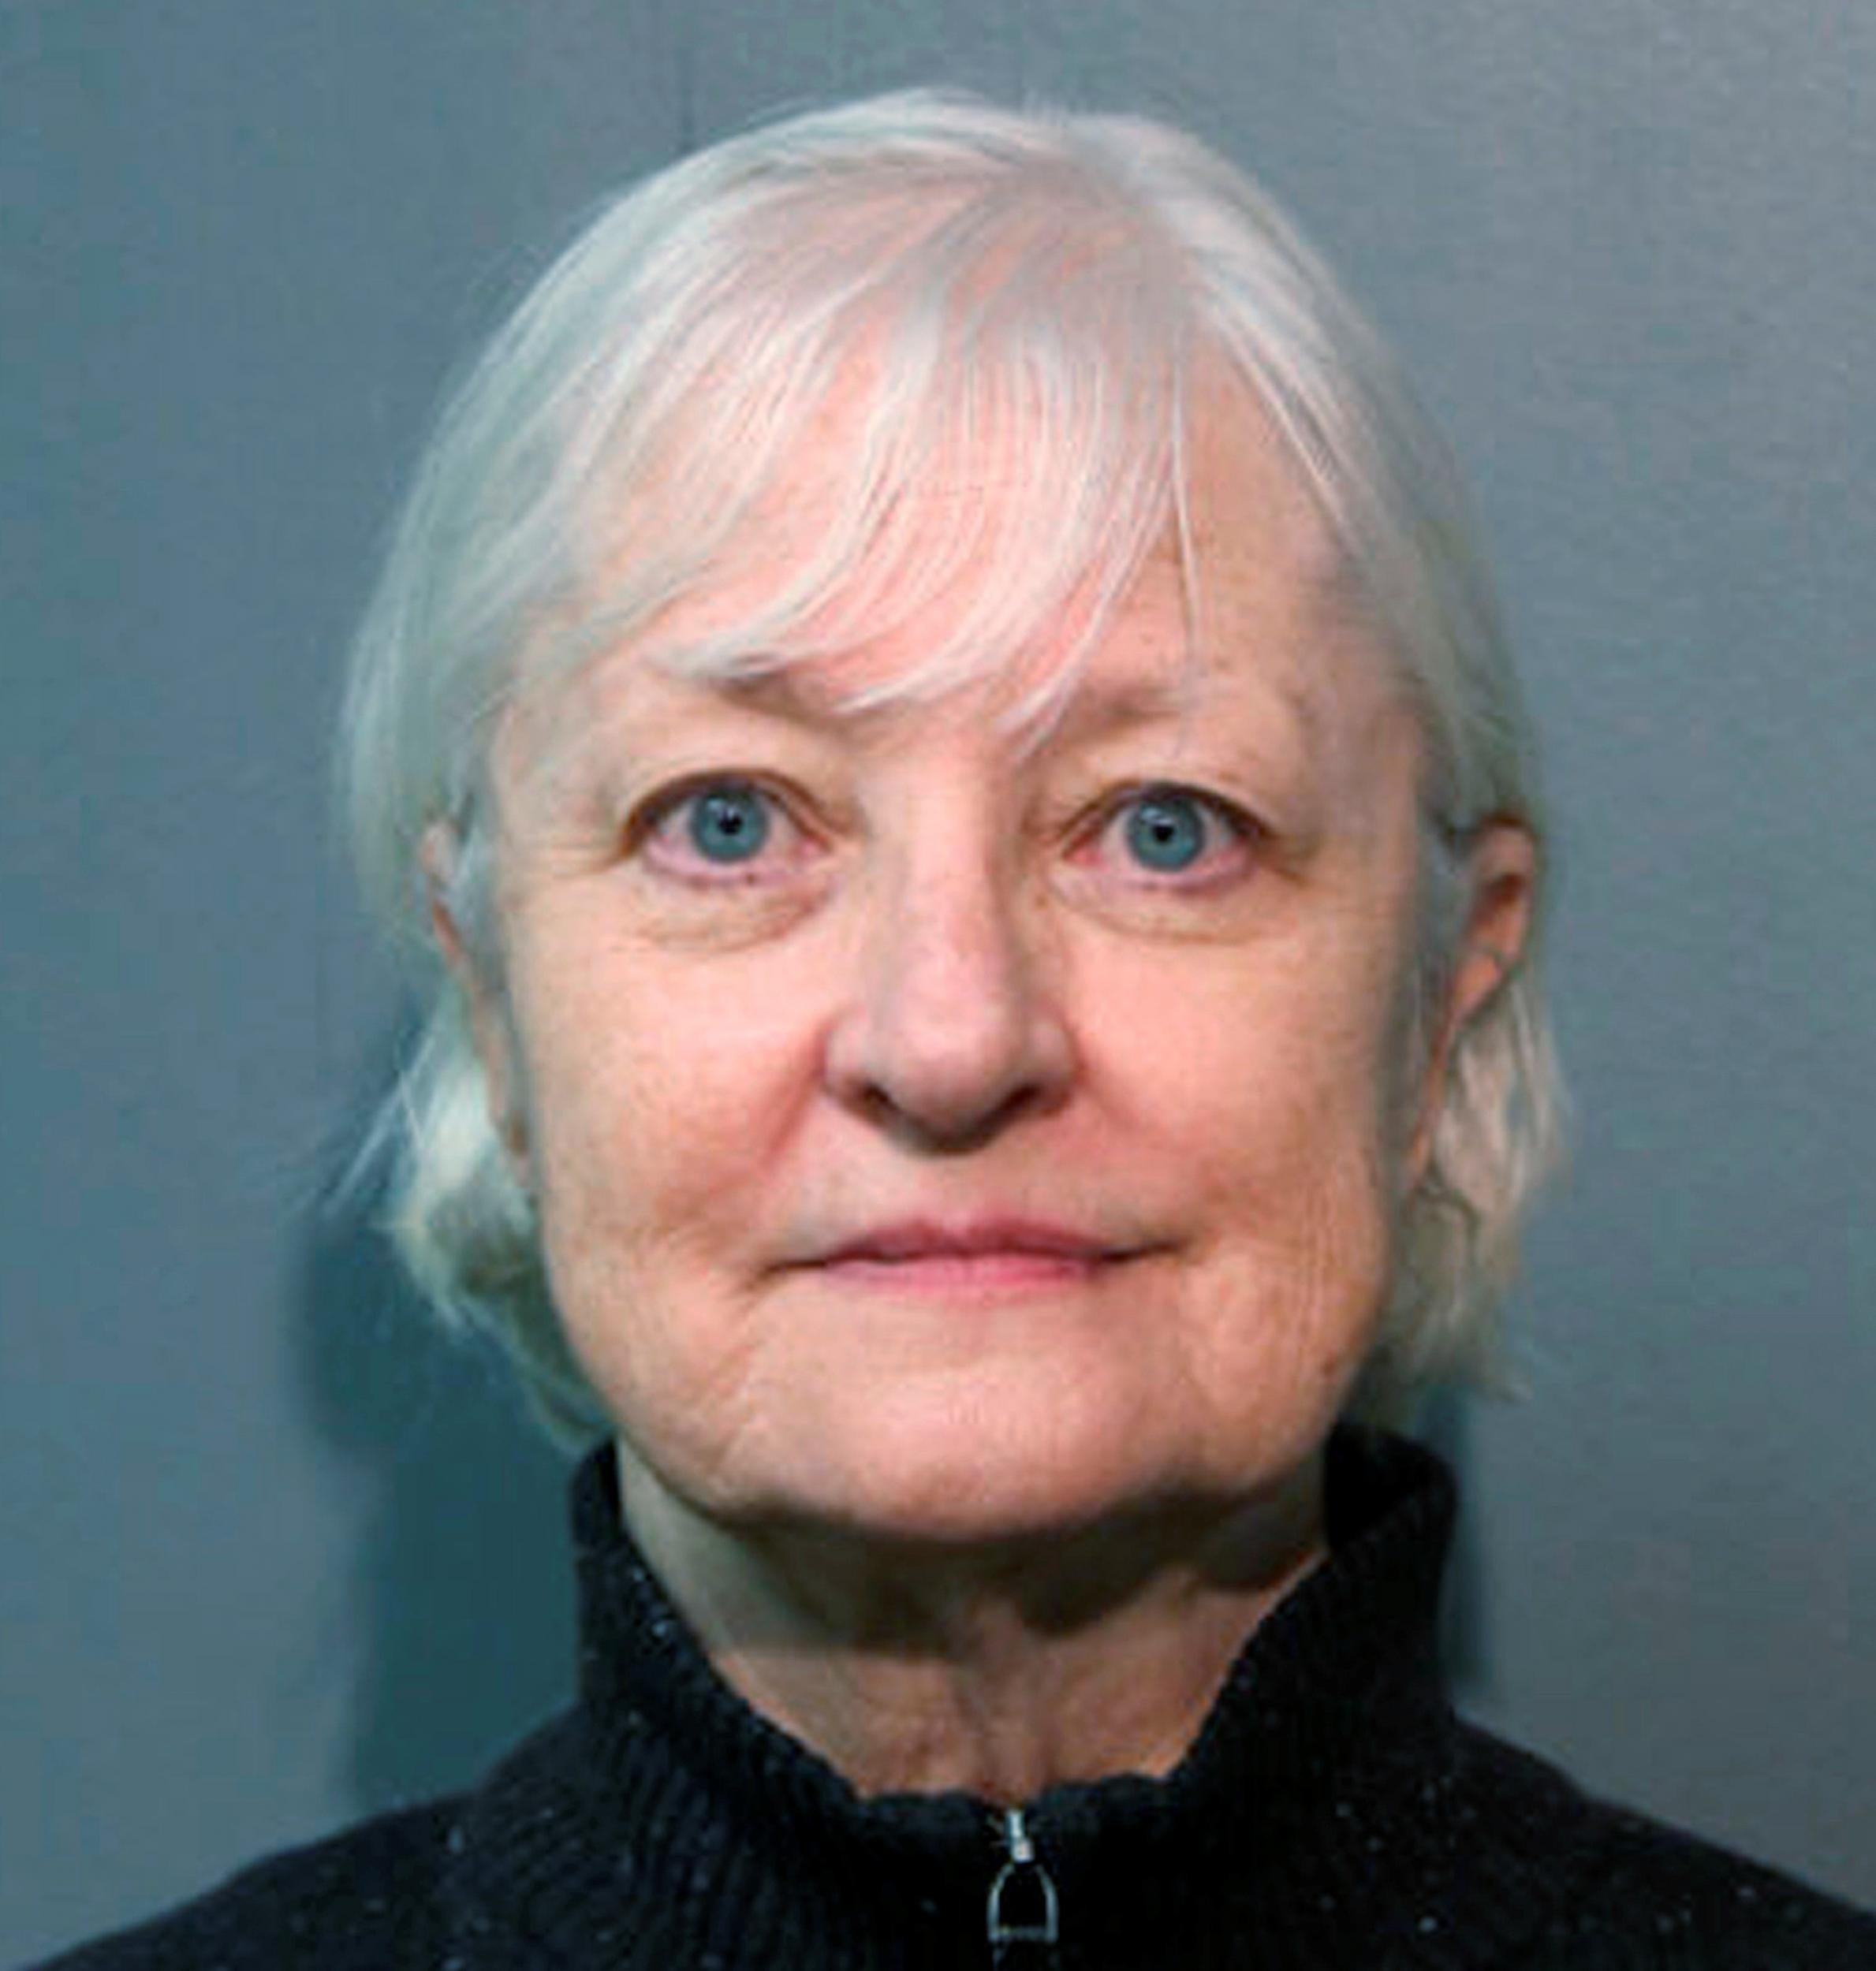 'Serial stowaway' caught trying to sneak onto another flight